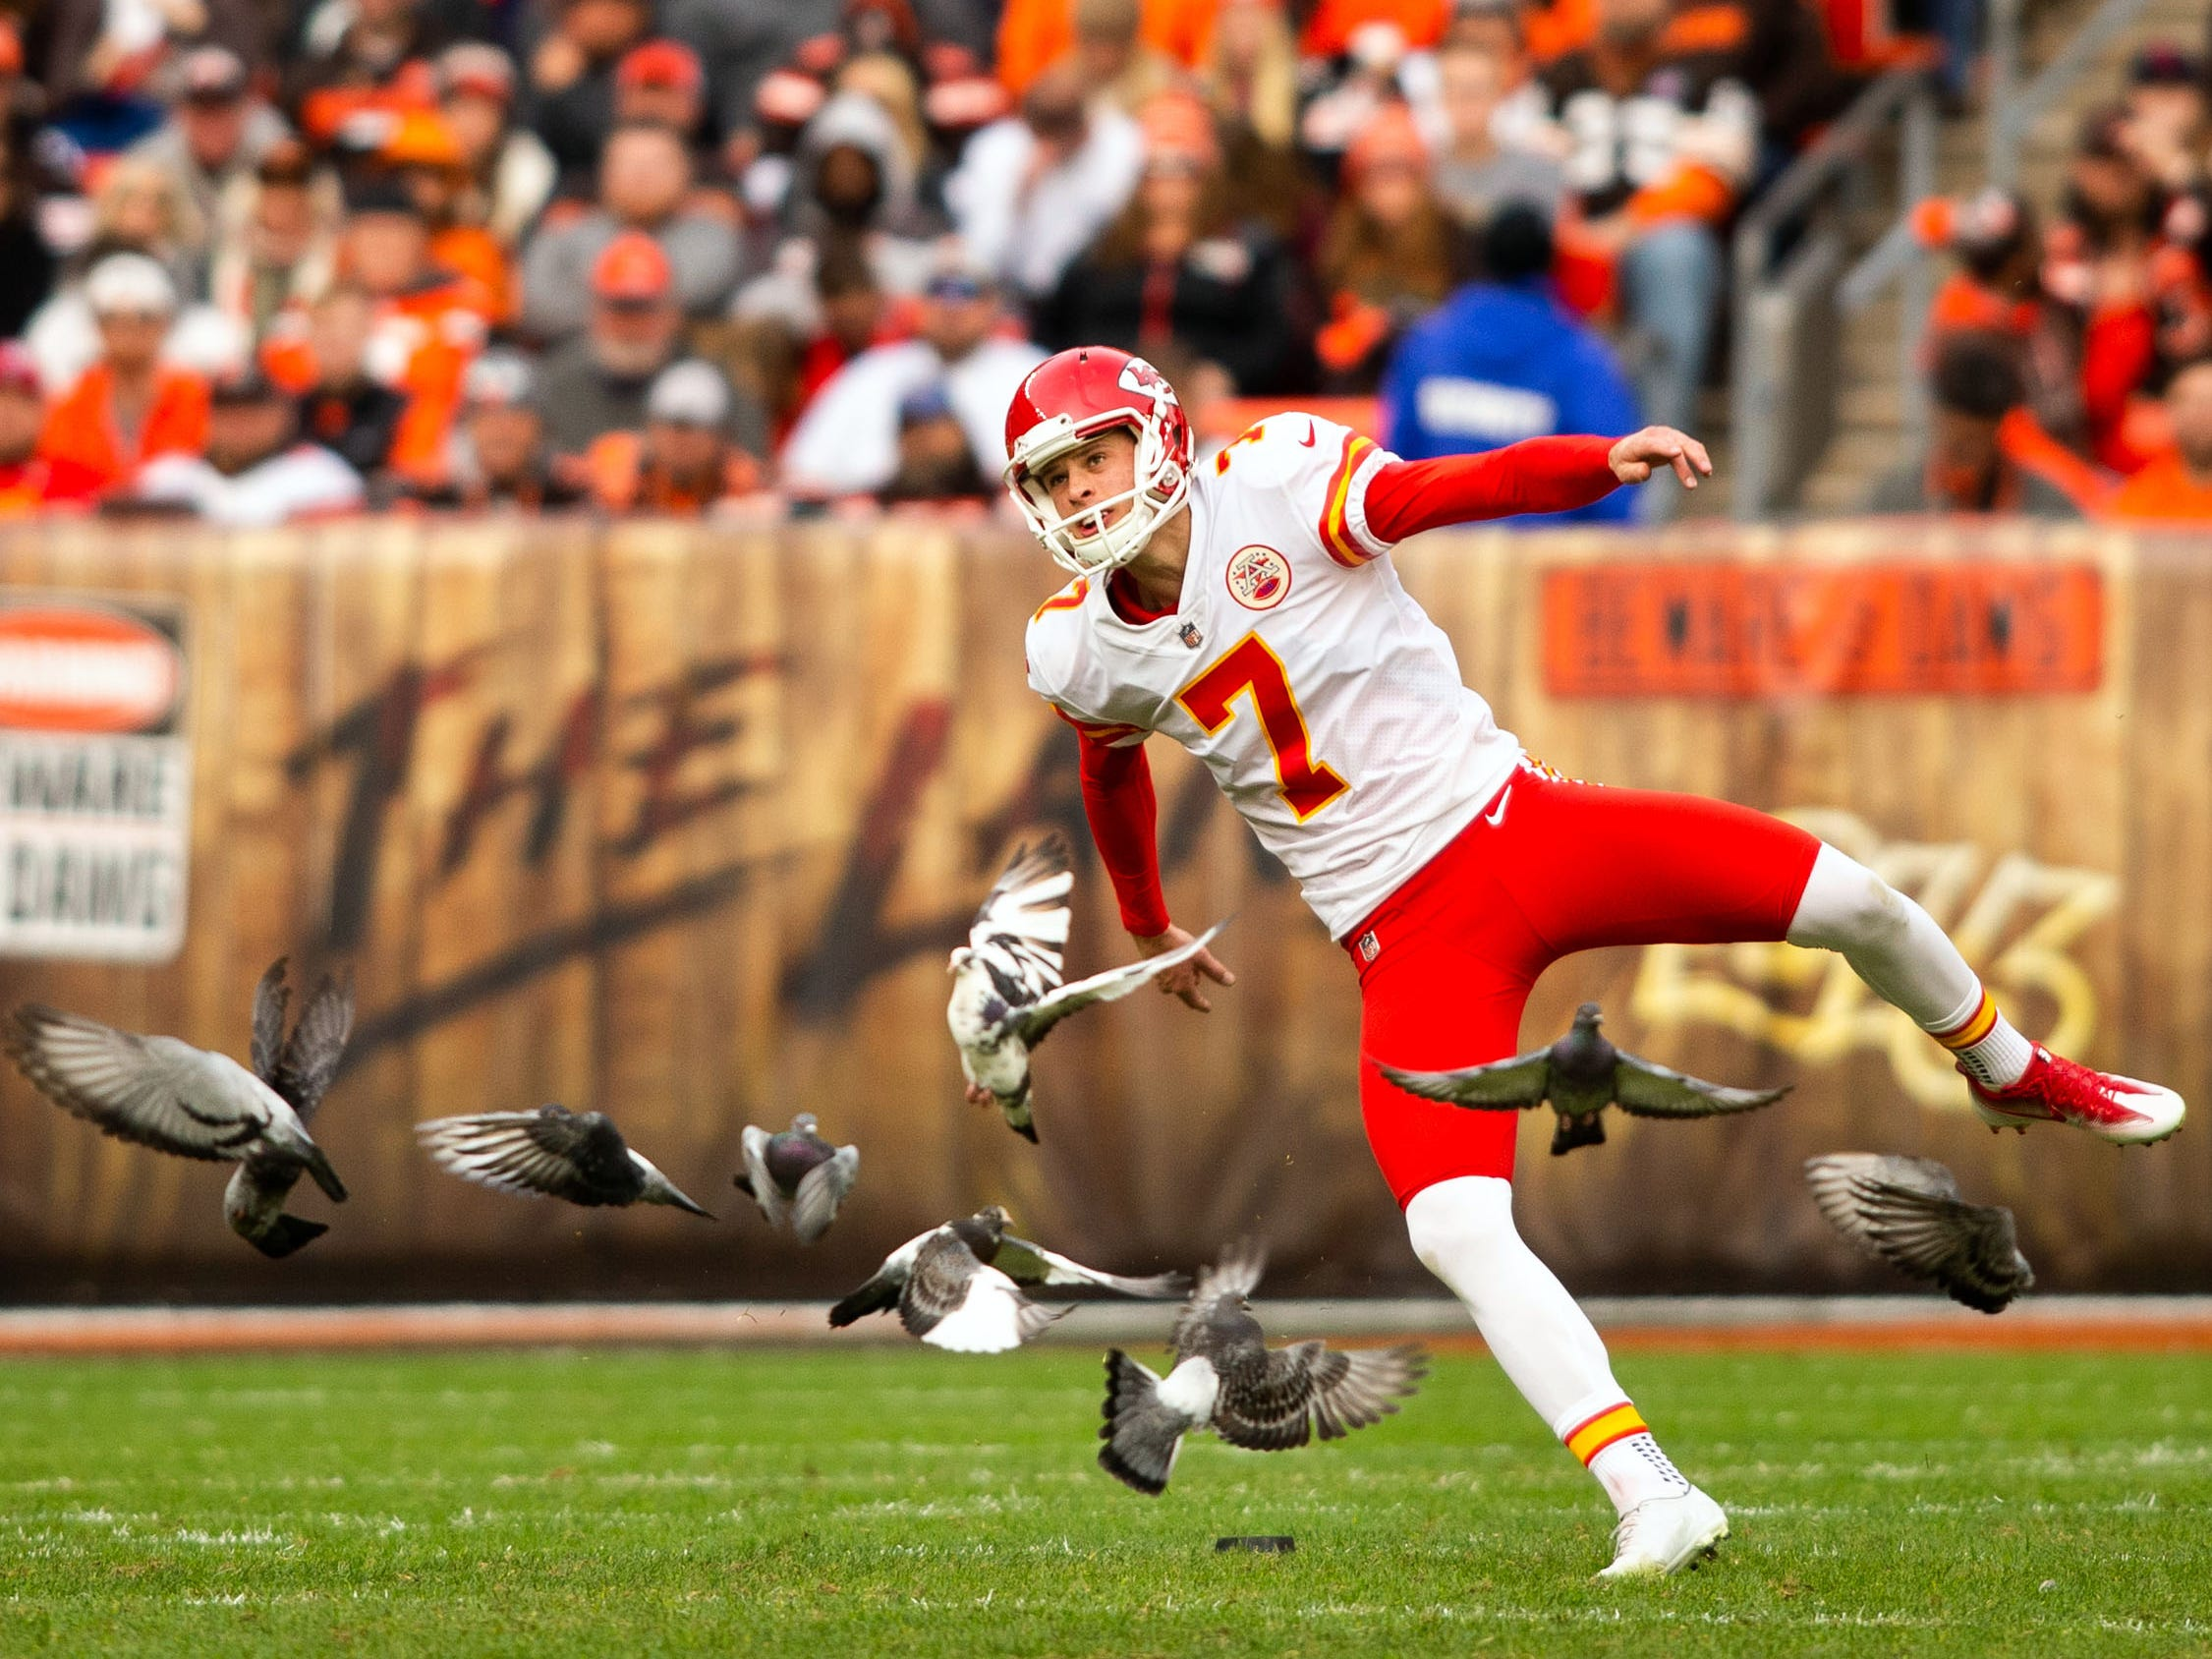 Week 9: A flock of pigeons fly away as Kansas City Chiefs kicker Harrison Butker kicks the ball to the Cleveland Browns during the fourth quarter at FirstEnergy Stadium. The Chiefs won the game, 37-21.